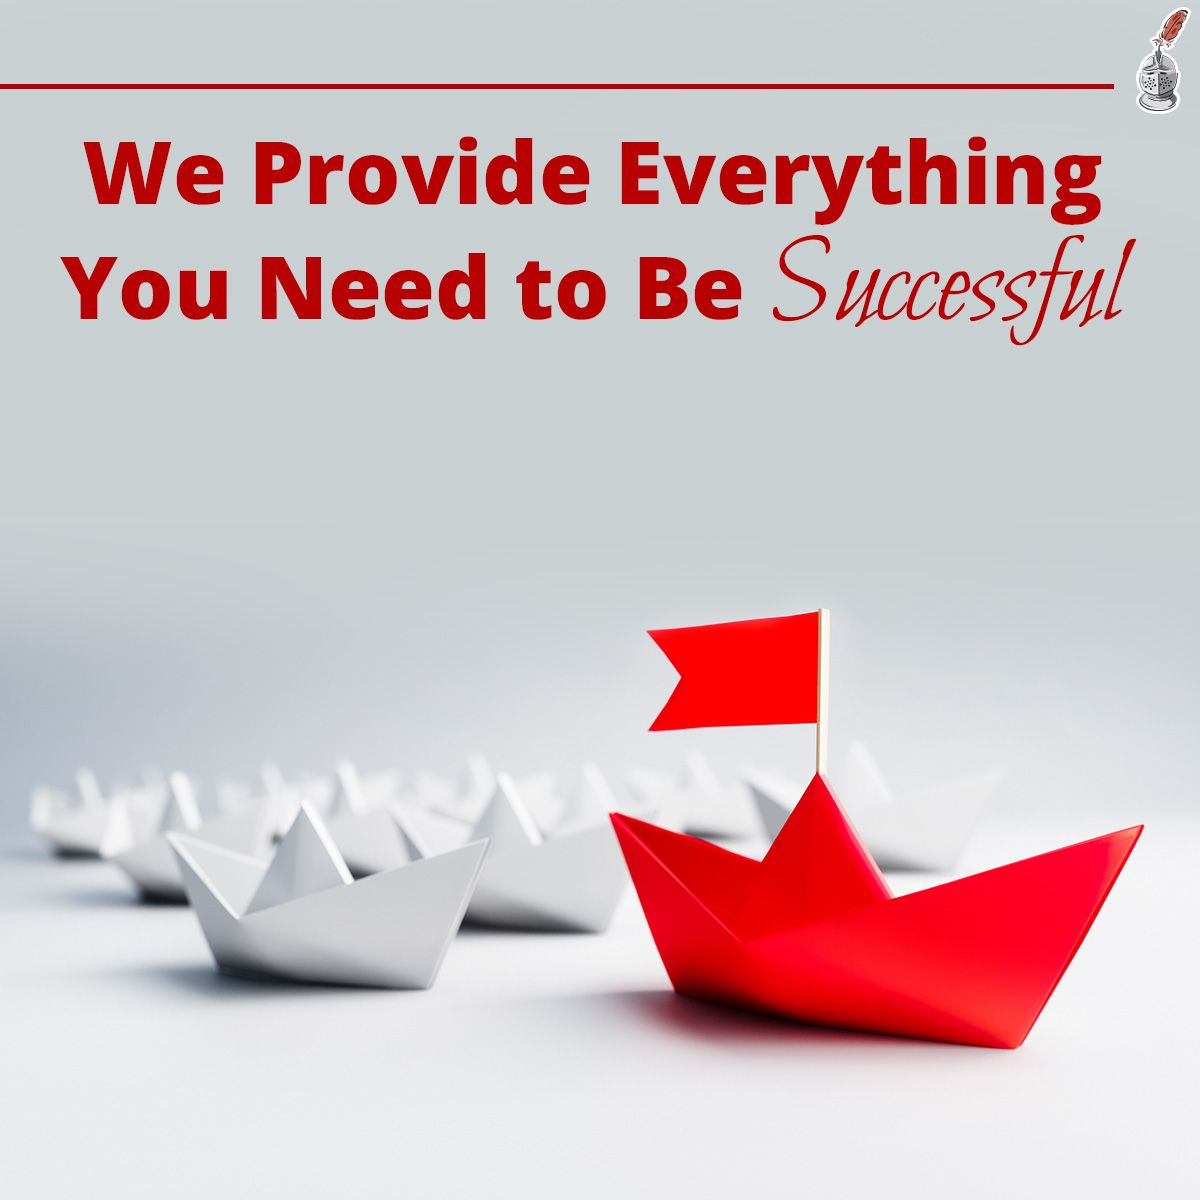 We Provide Everything You Need to Be Successful